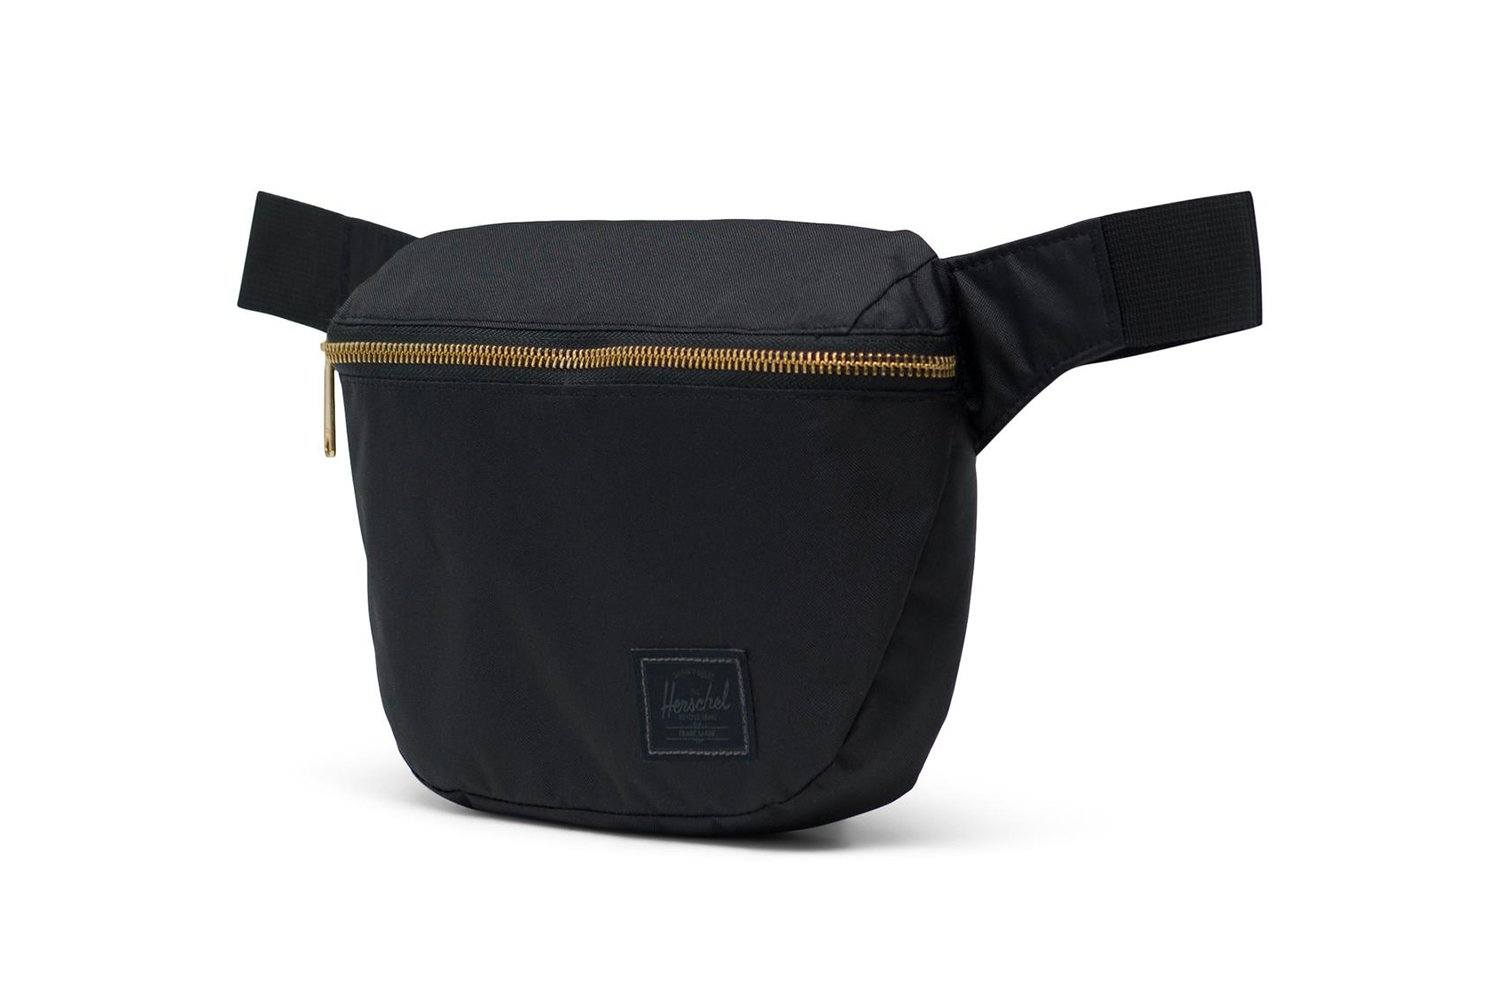 FIFTEEN LT 300D POLY ACCESSORIES HERSCHEL